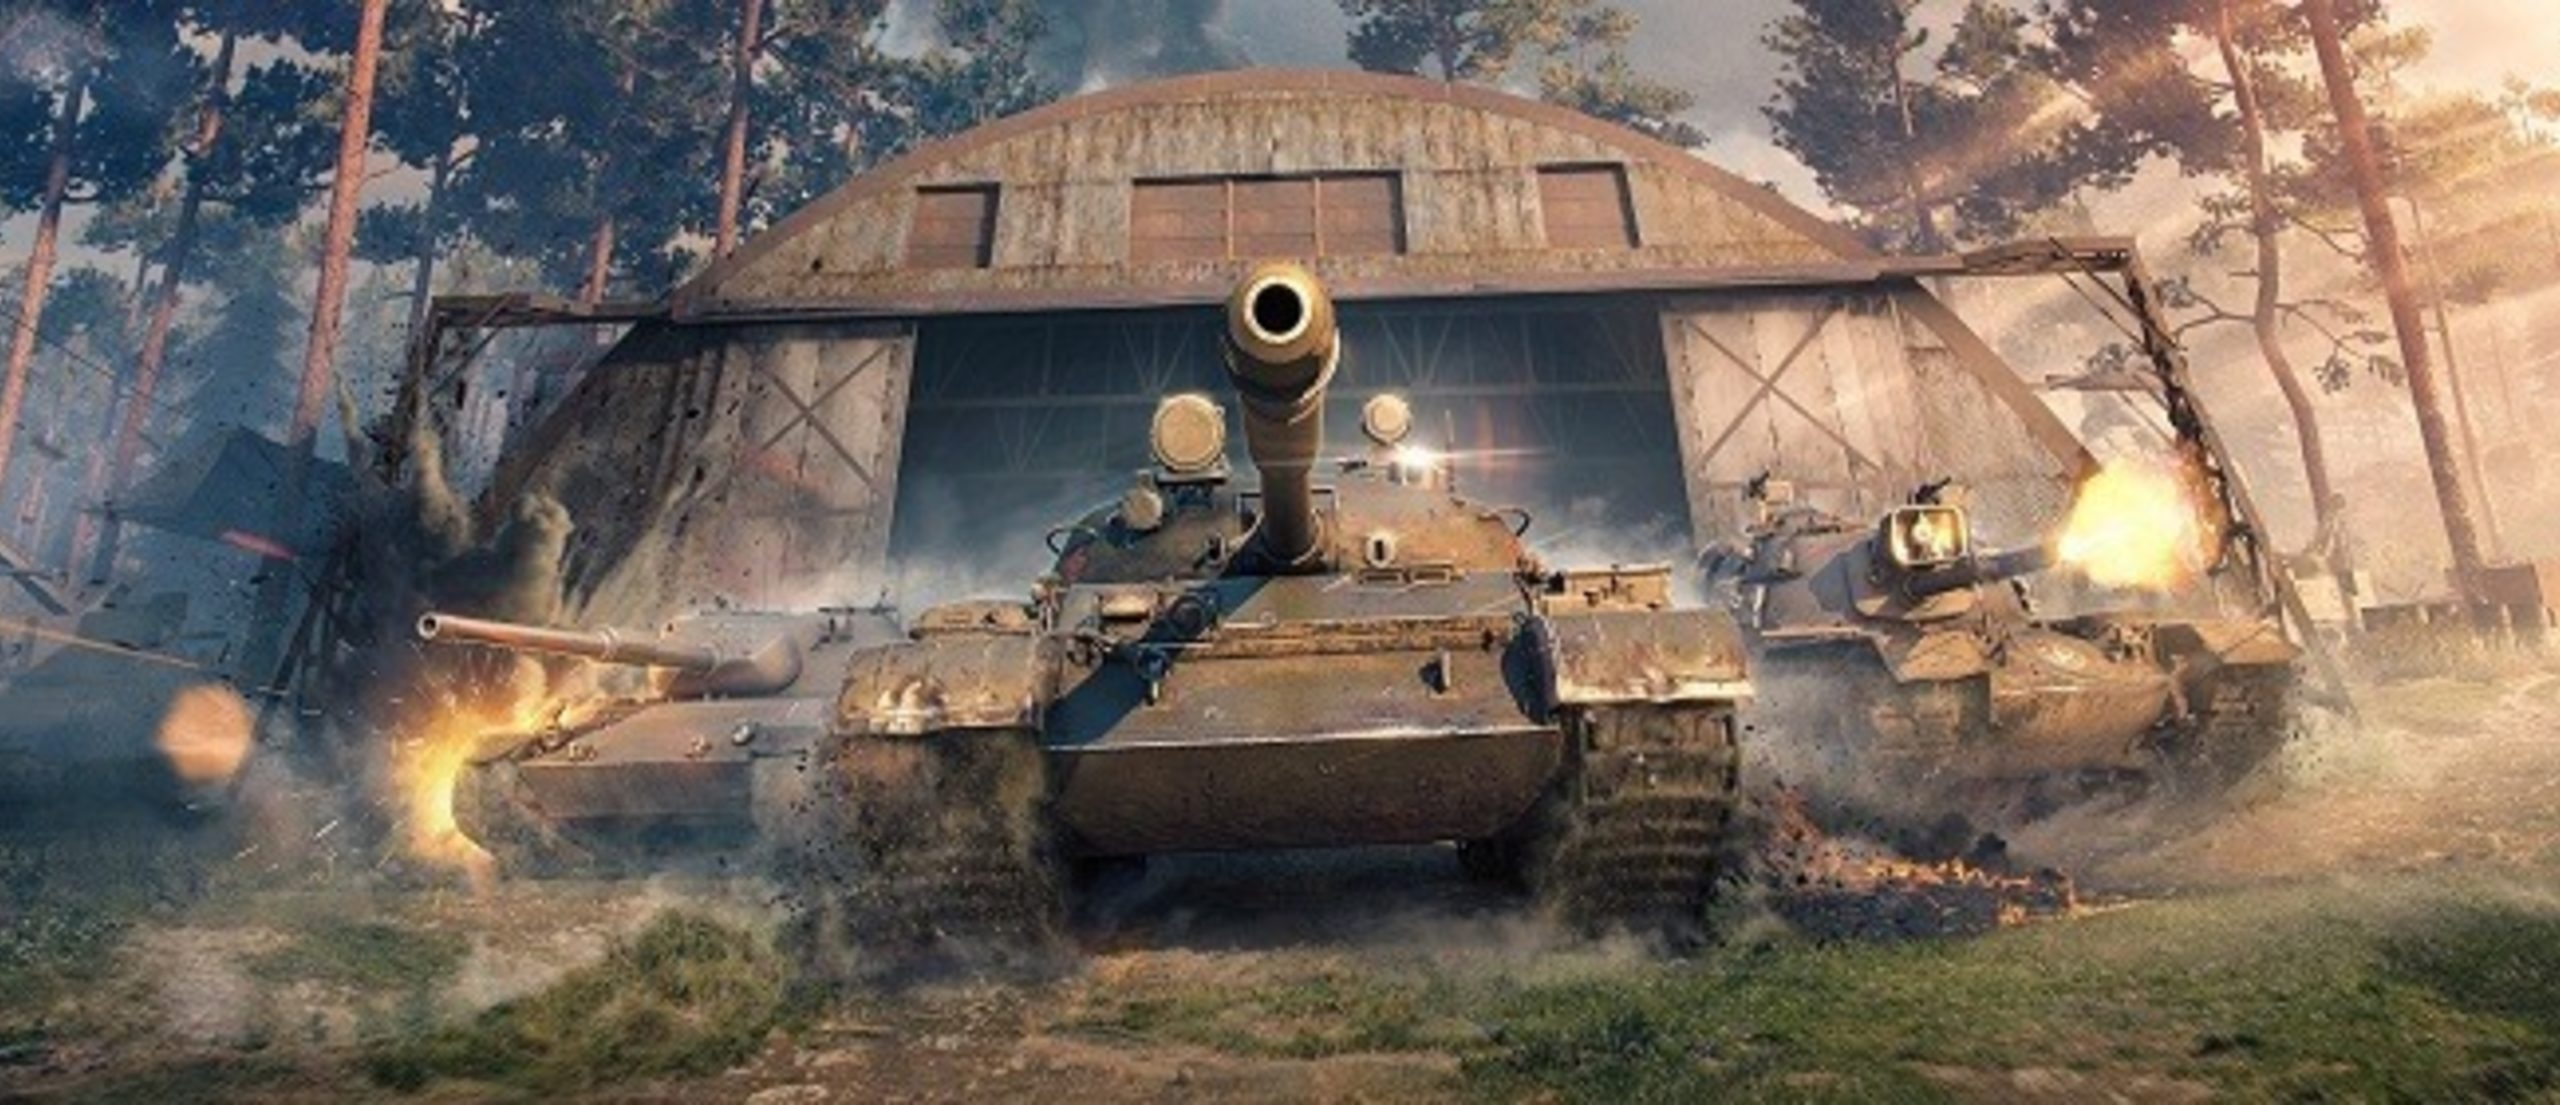 World of Tanks: how to get 14 days premium account